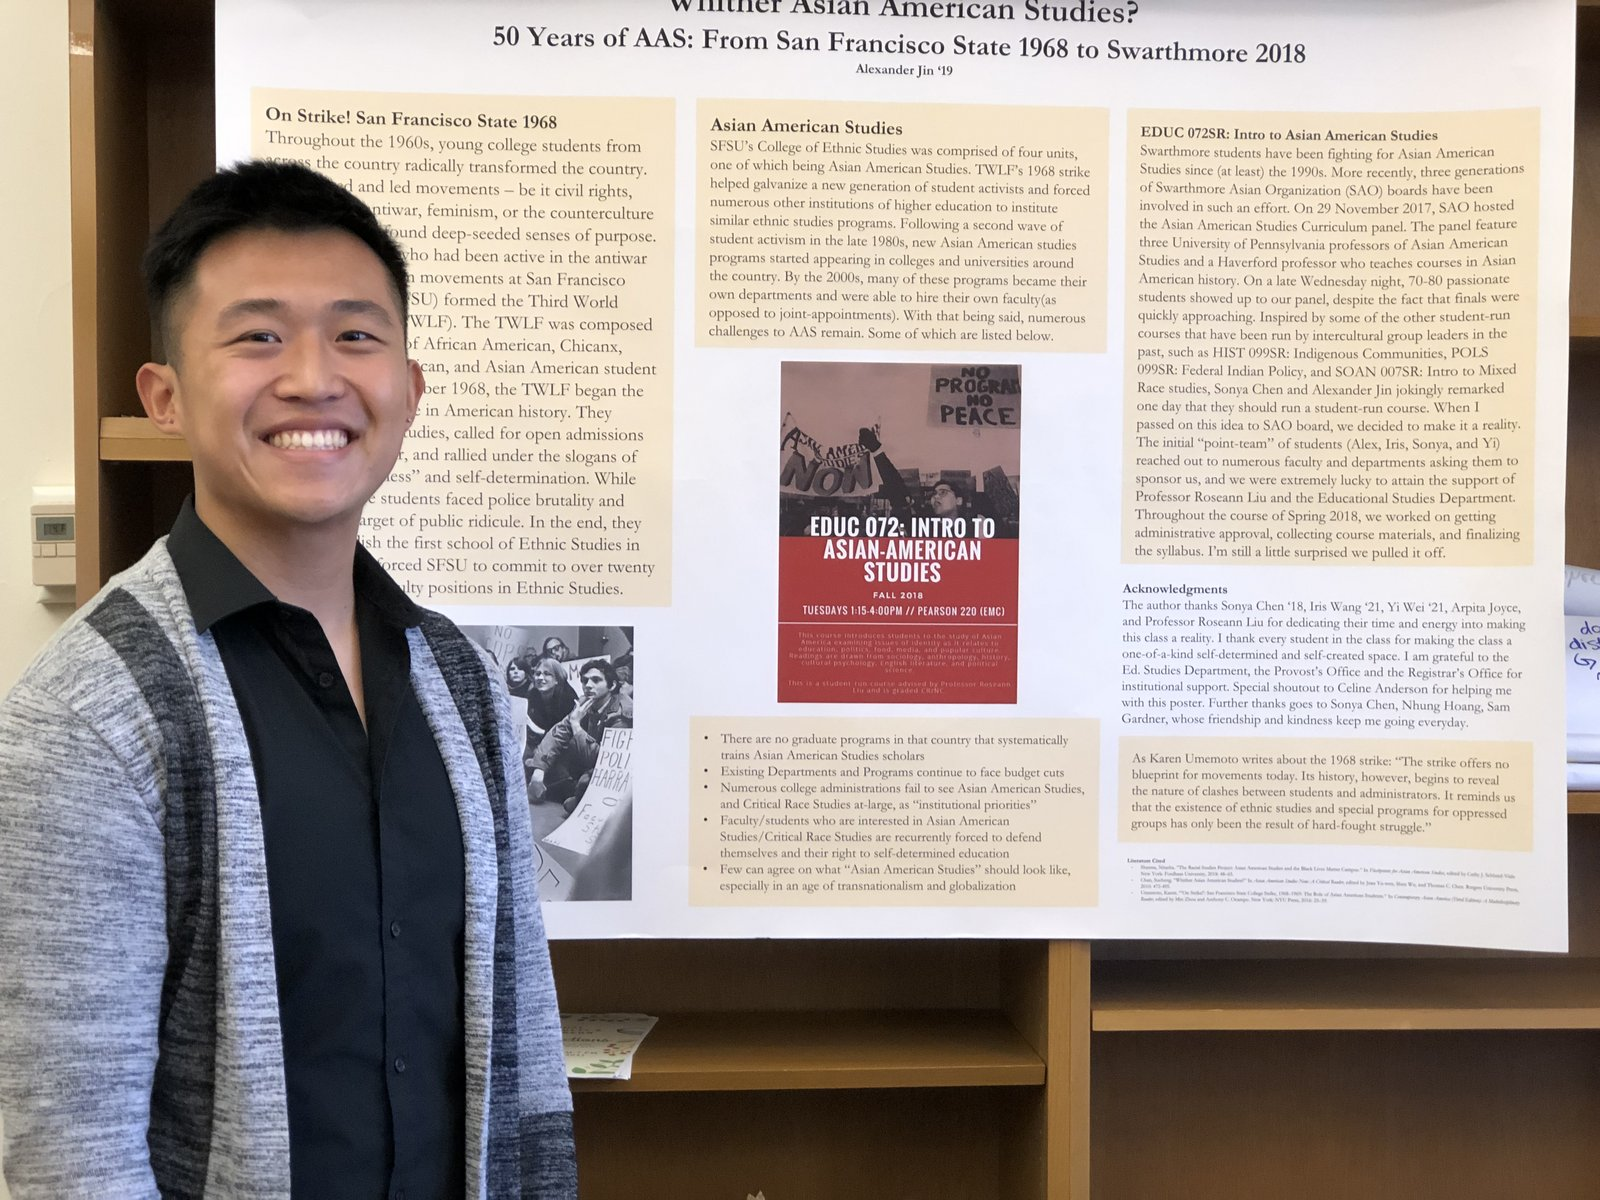 Alex Jin '19 Presenting a Project from EDUC 072: Intro to Asian American Studies